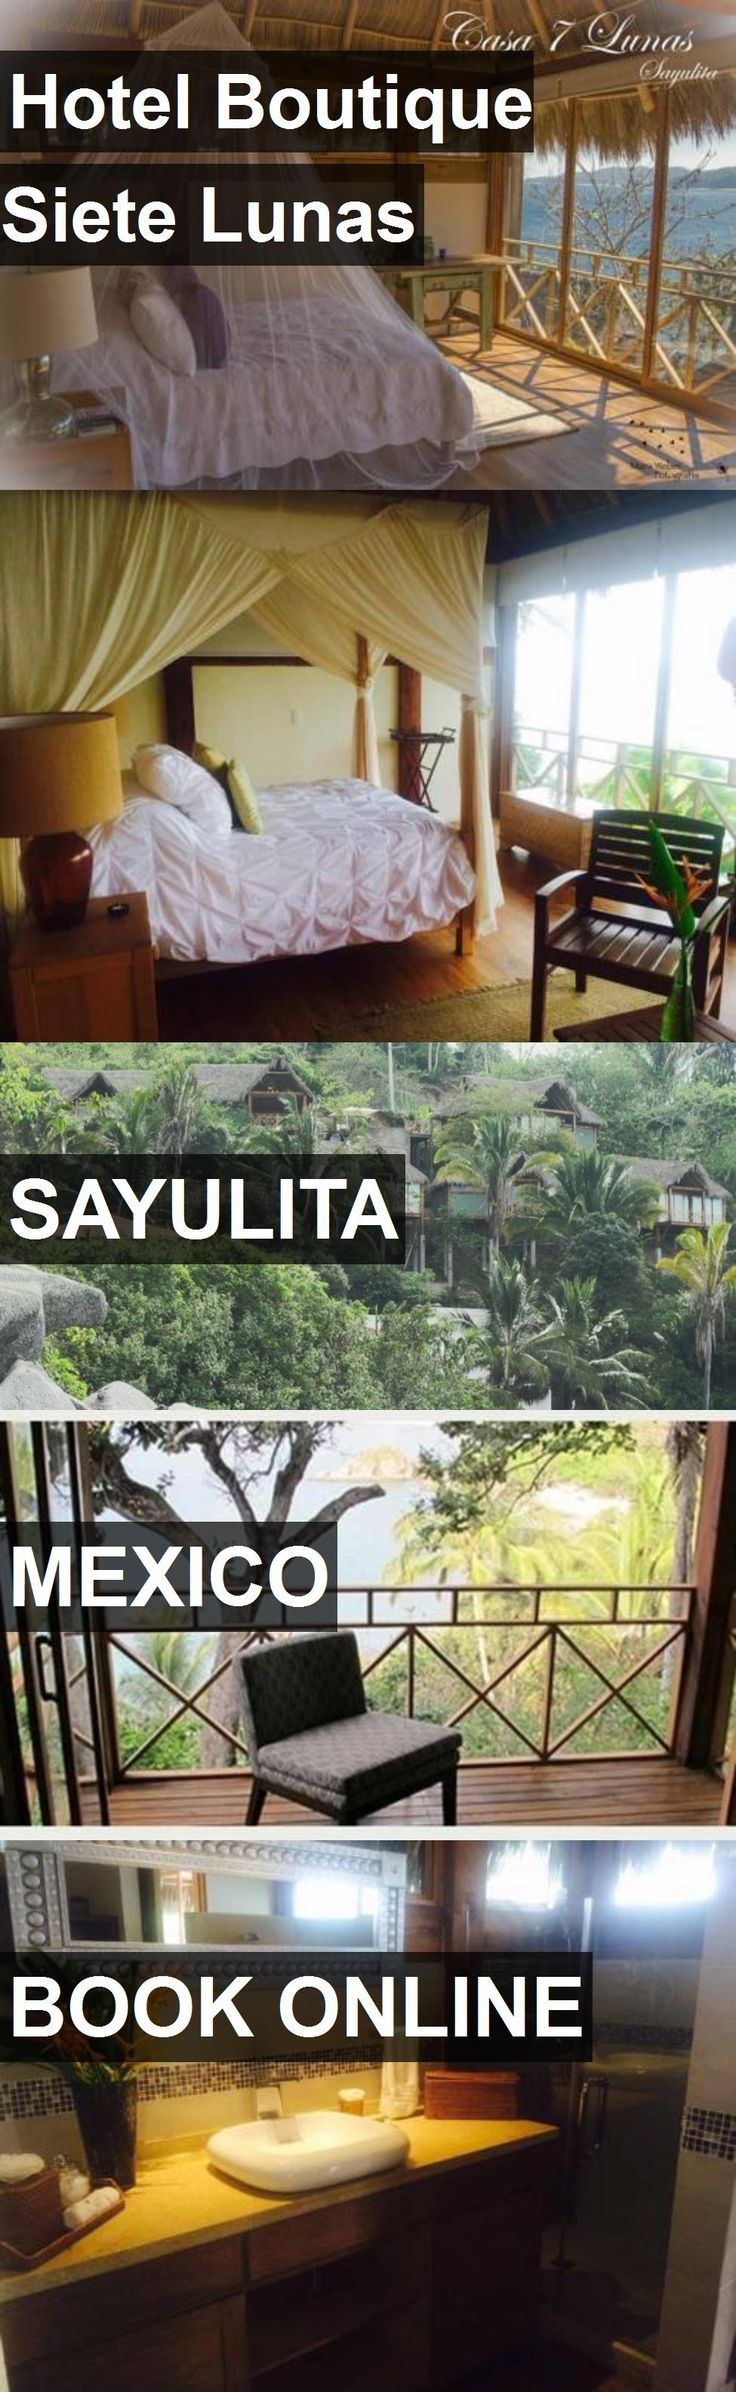 Hotel Boutique Siete Lunas in Sayulita, Mexico. For more information, photos, reviews and best prices please follow the link. #Mexico #Sayulita #travel #vacation #hotel